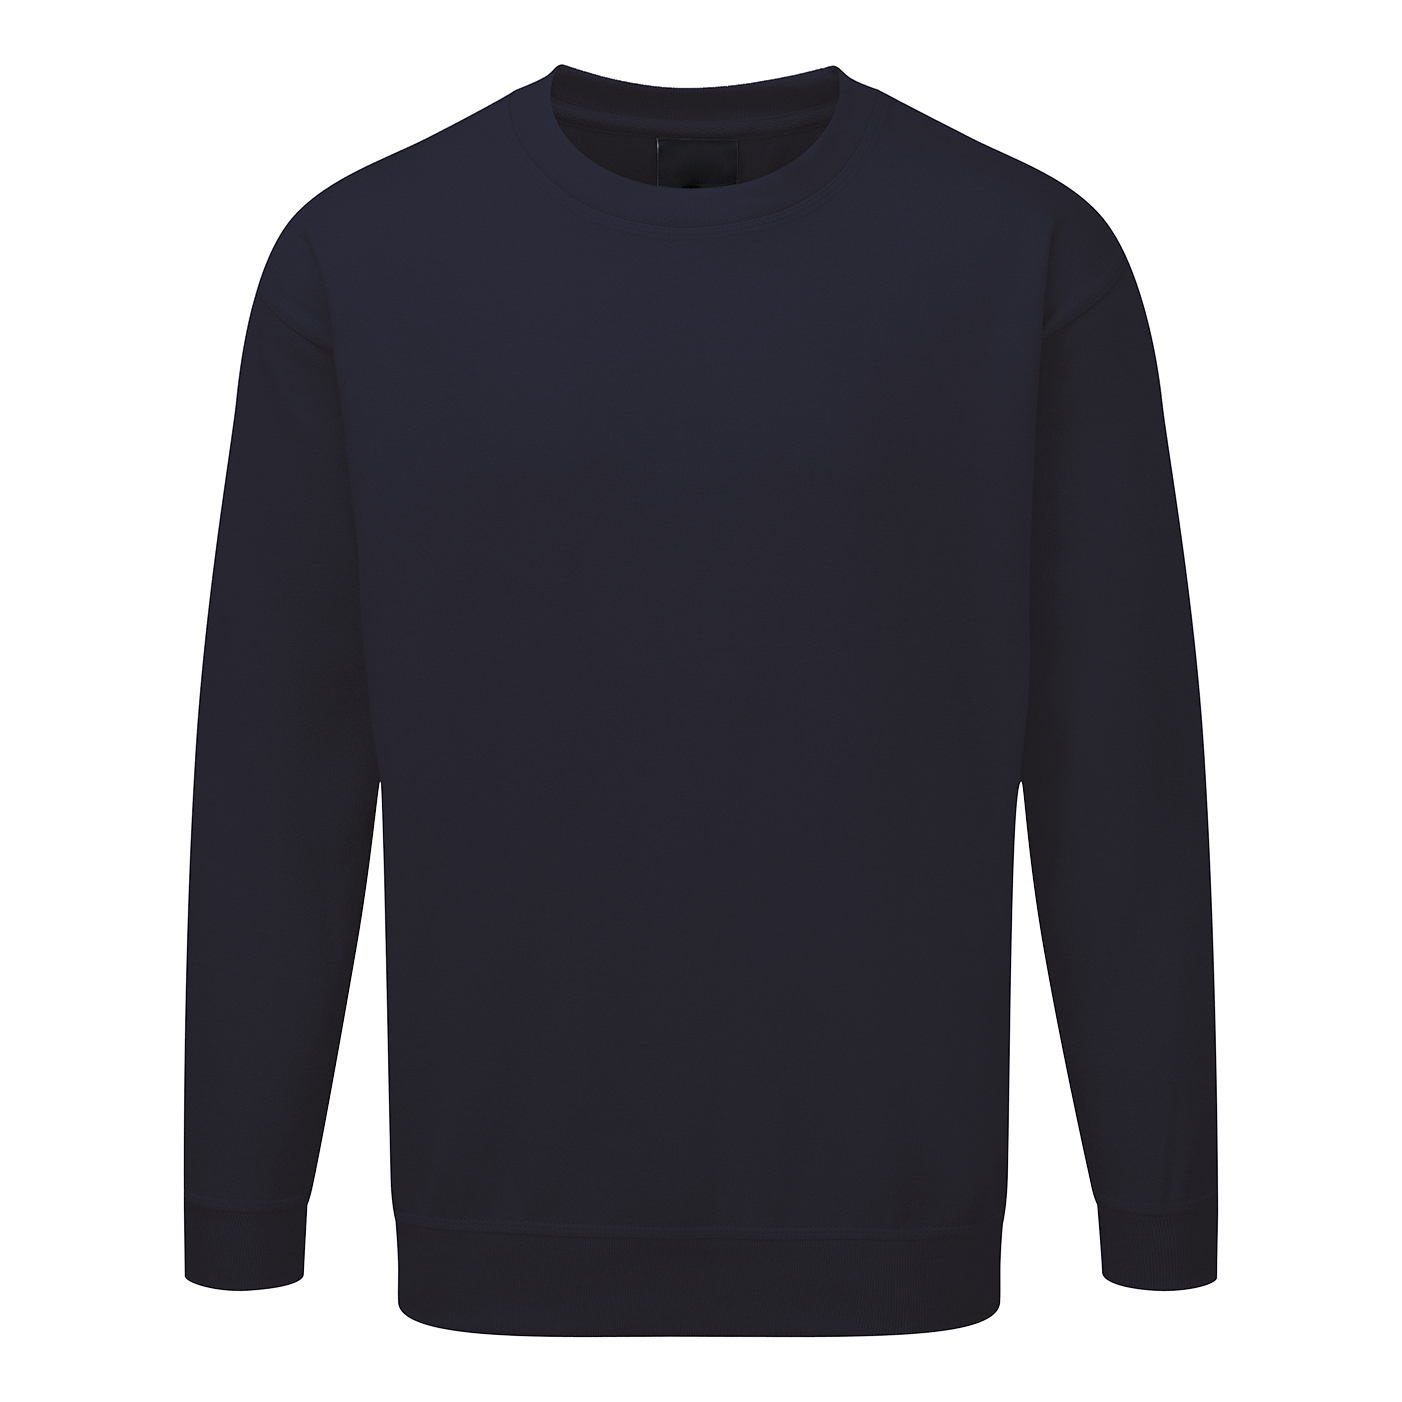 Sweatshirts / Jumpers / Hoodies Click Workwear Sweatshirt Polycotton 300gsm 2XL Navy Blue Ref CLPCSNXXL *1-3 Days Lead Time*